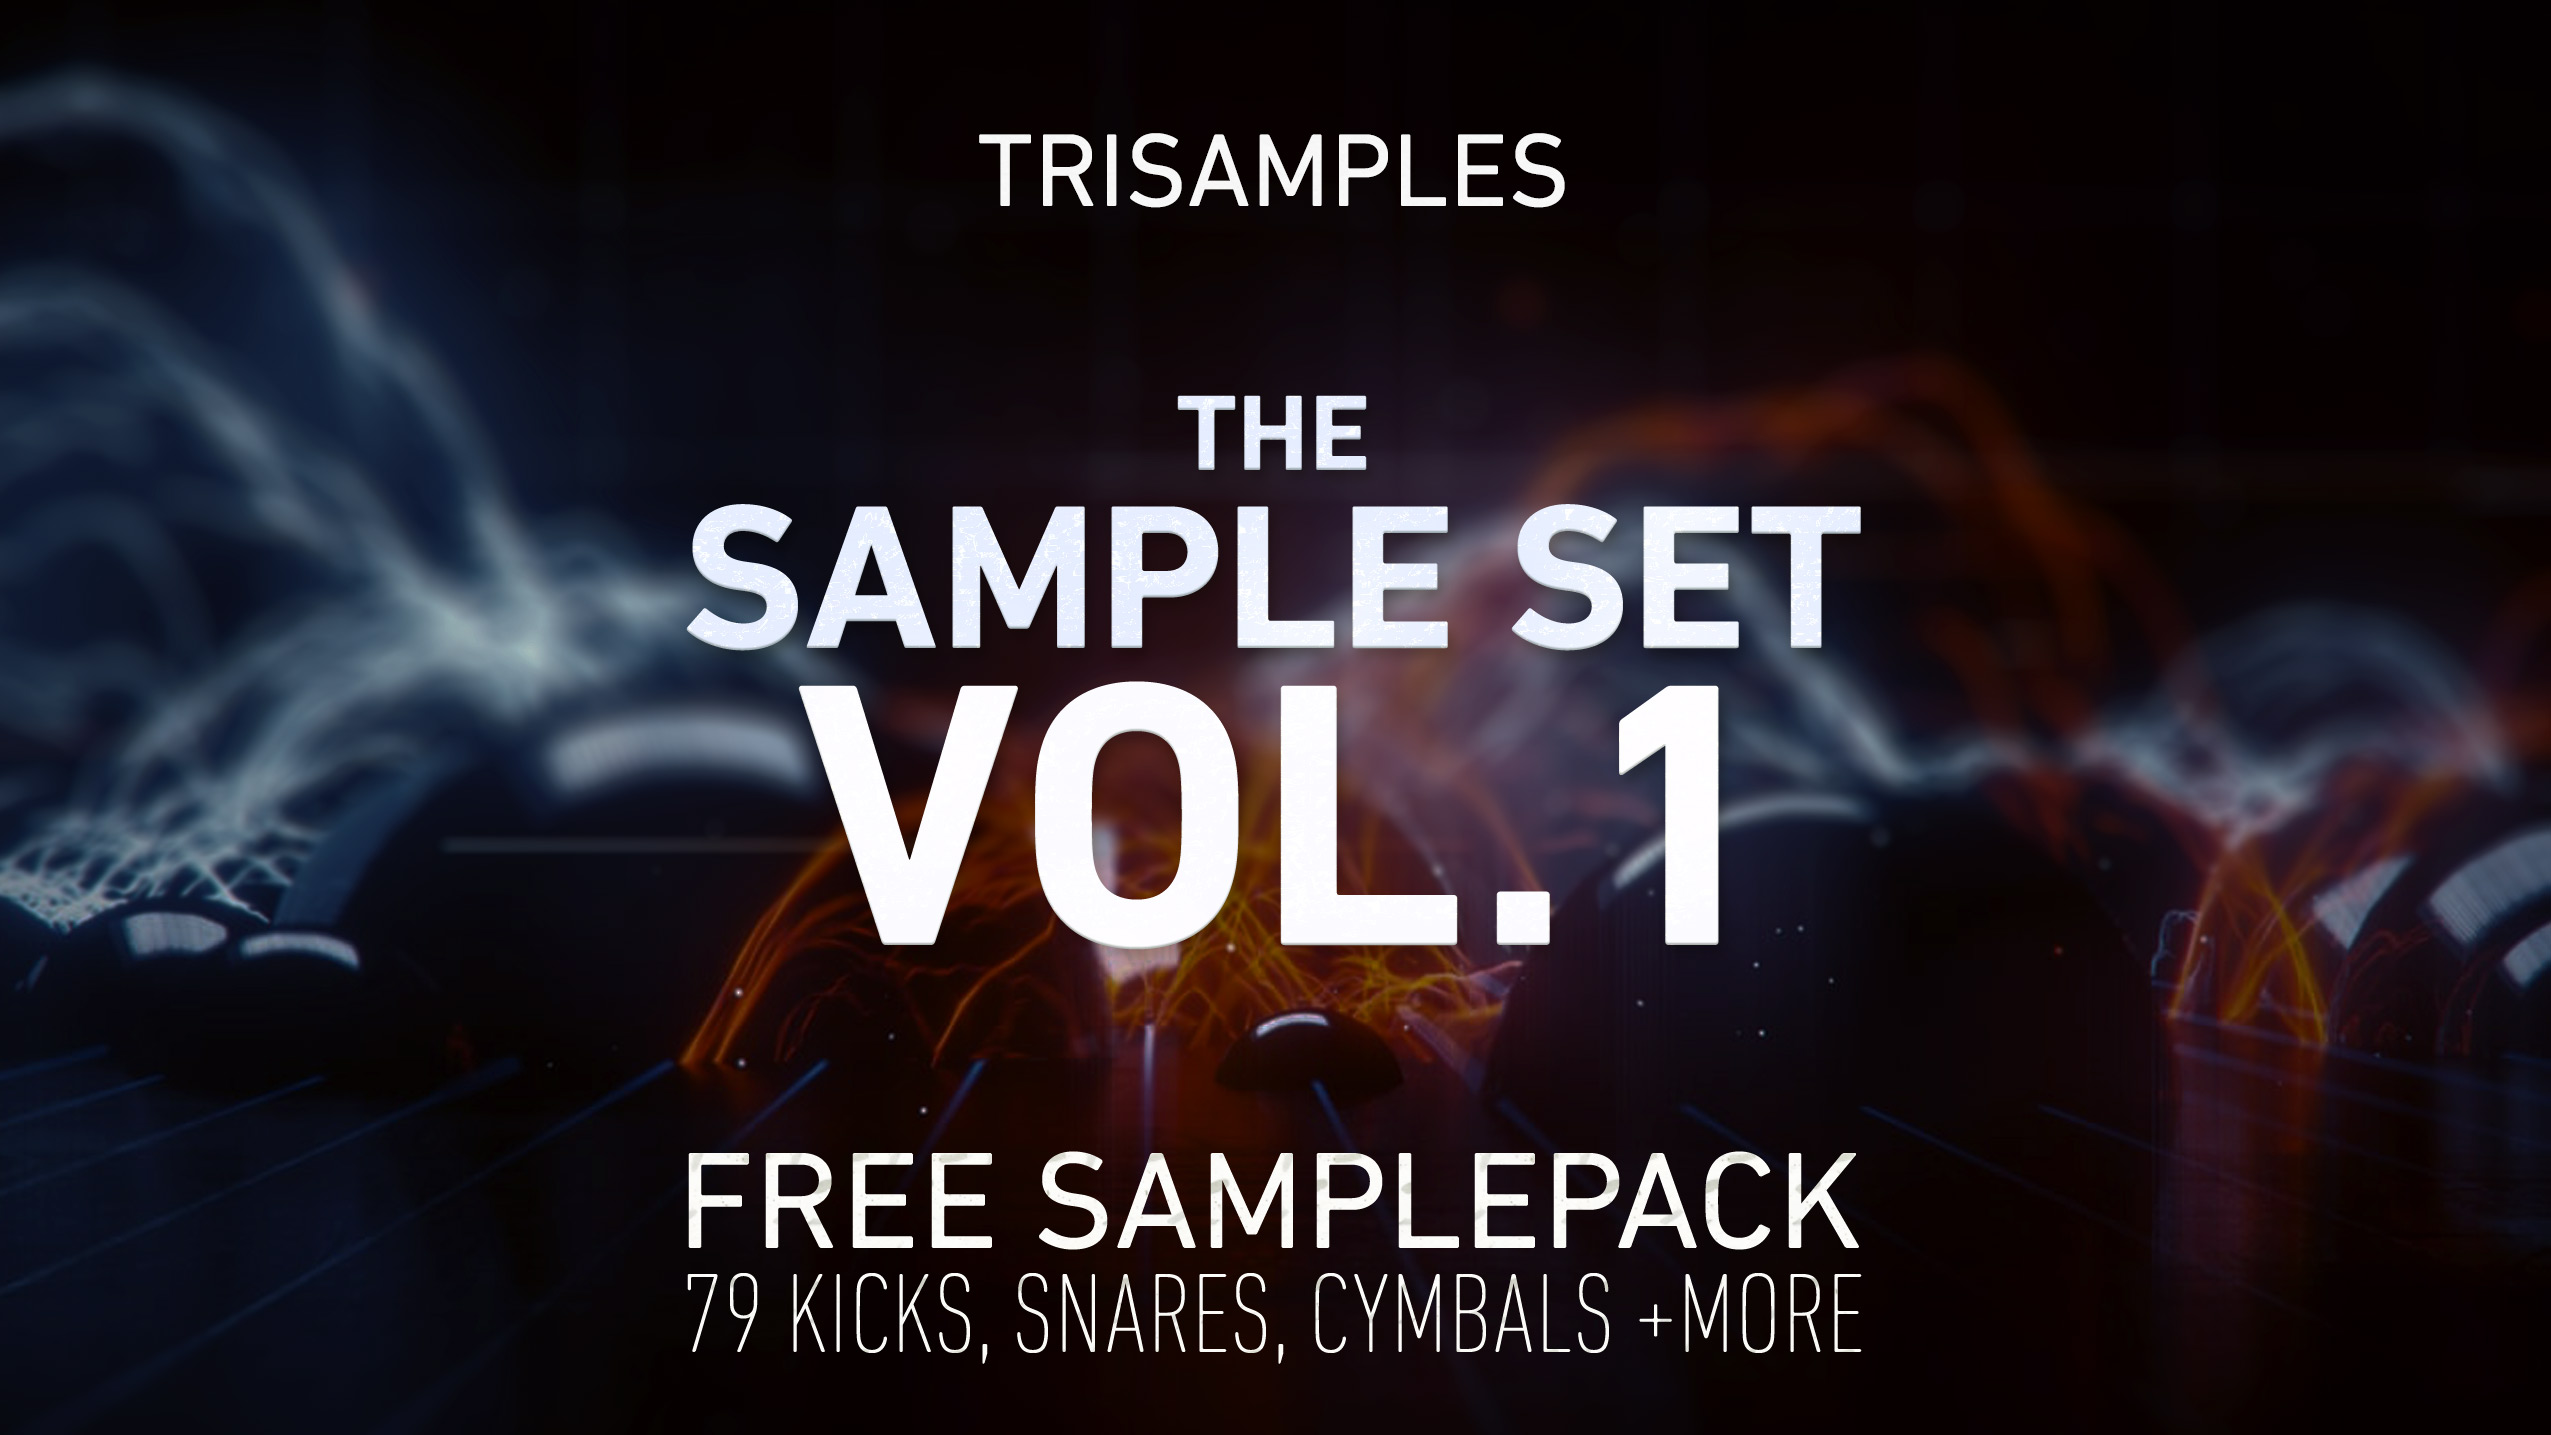 TriSamples---The-Sample-Set-Vol-1-Artwork